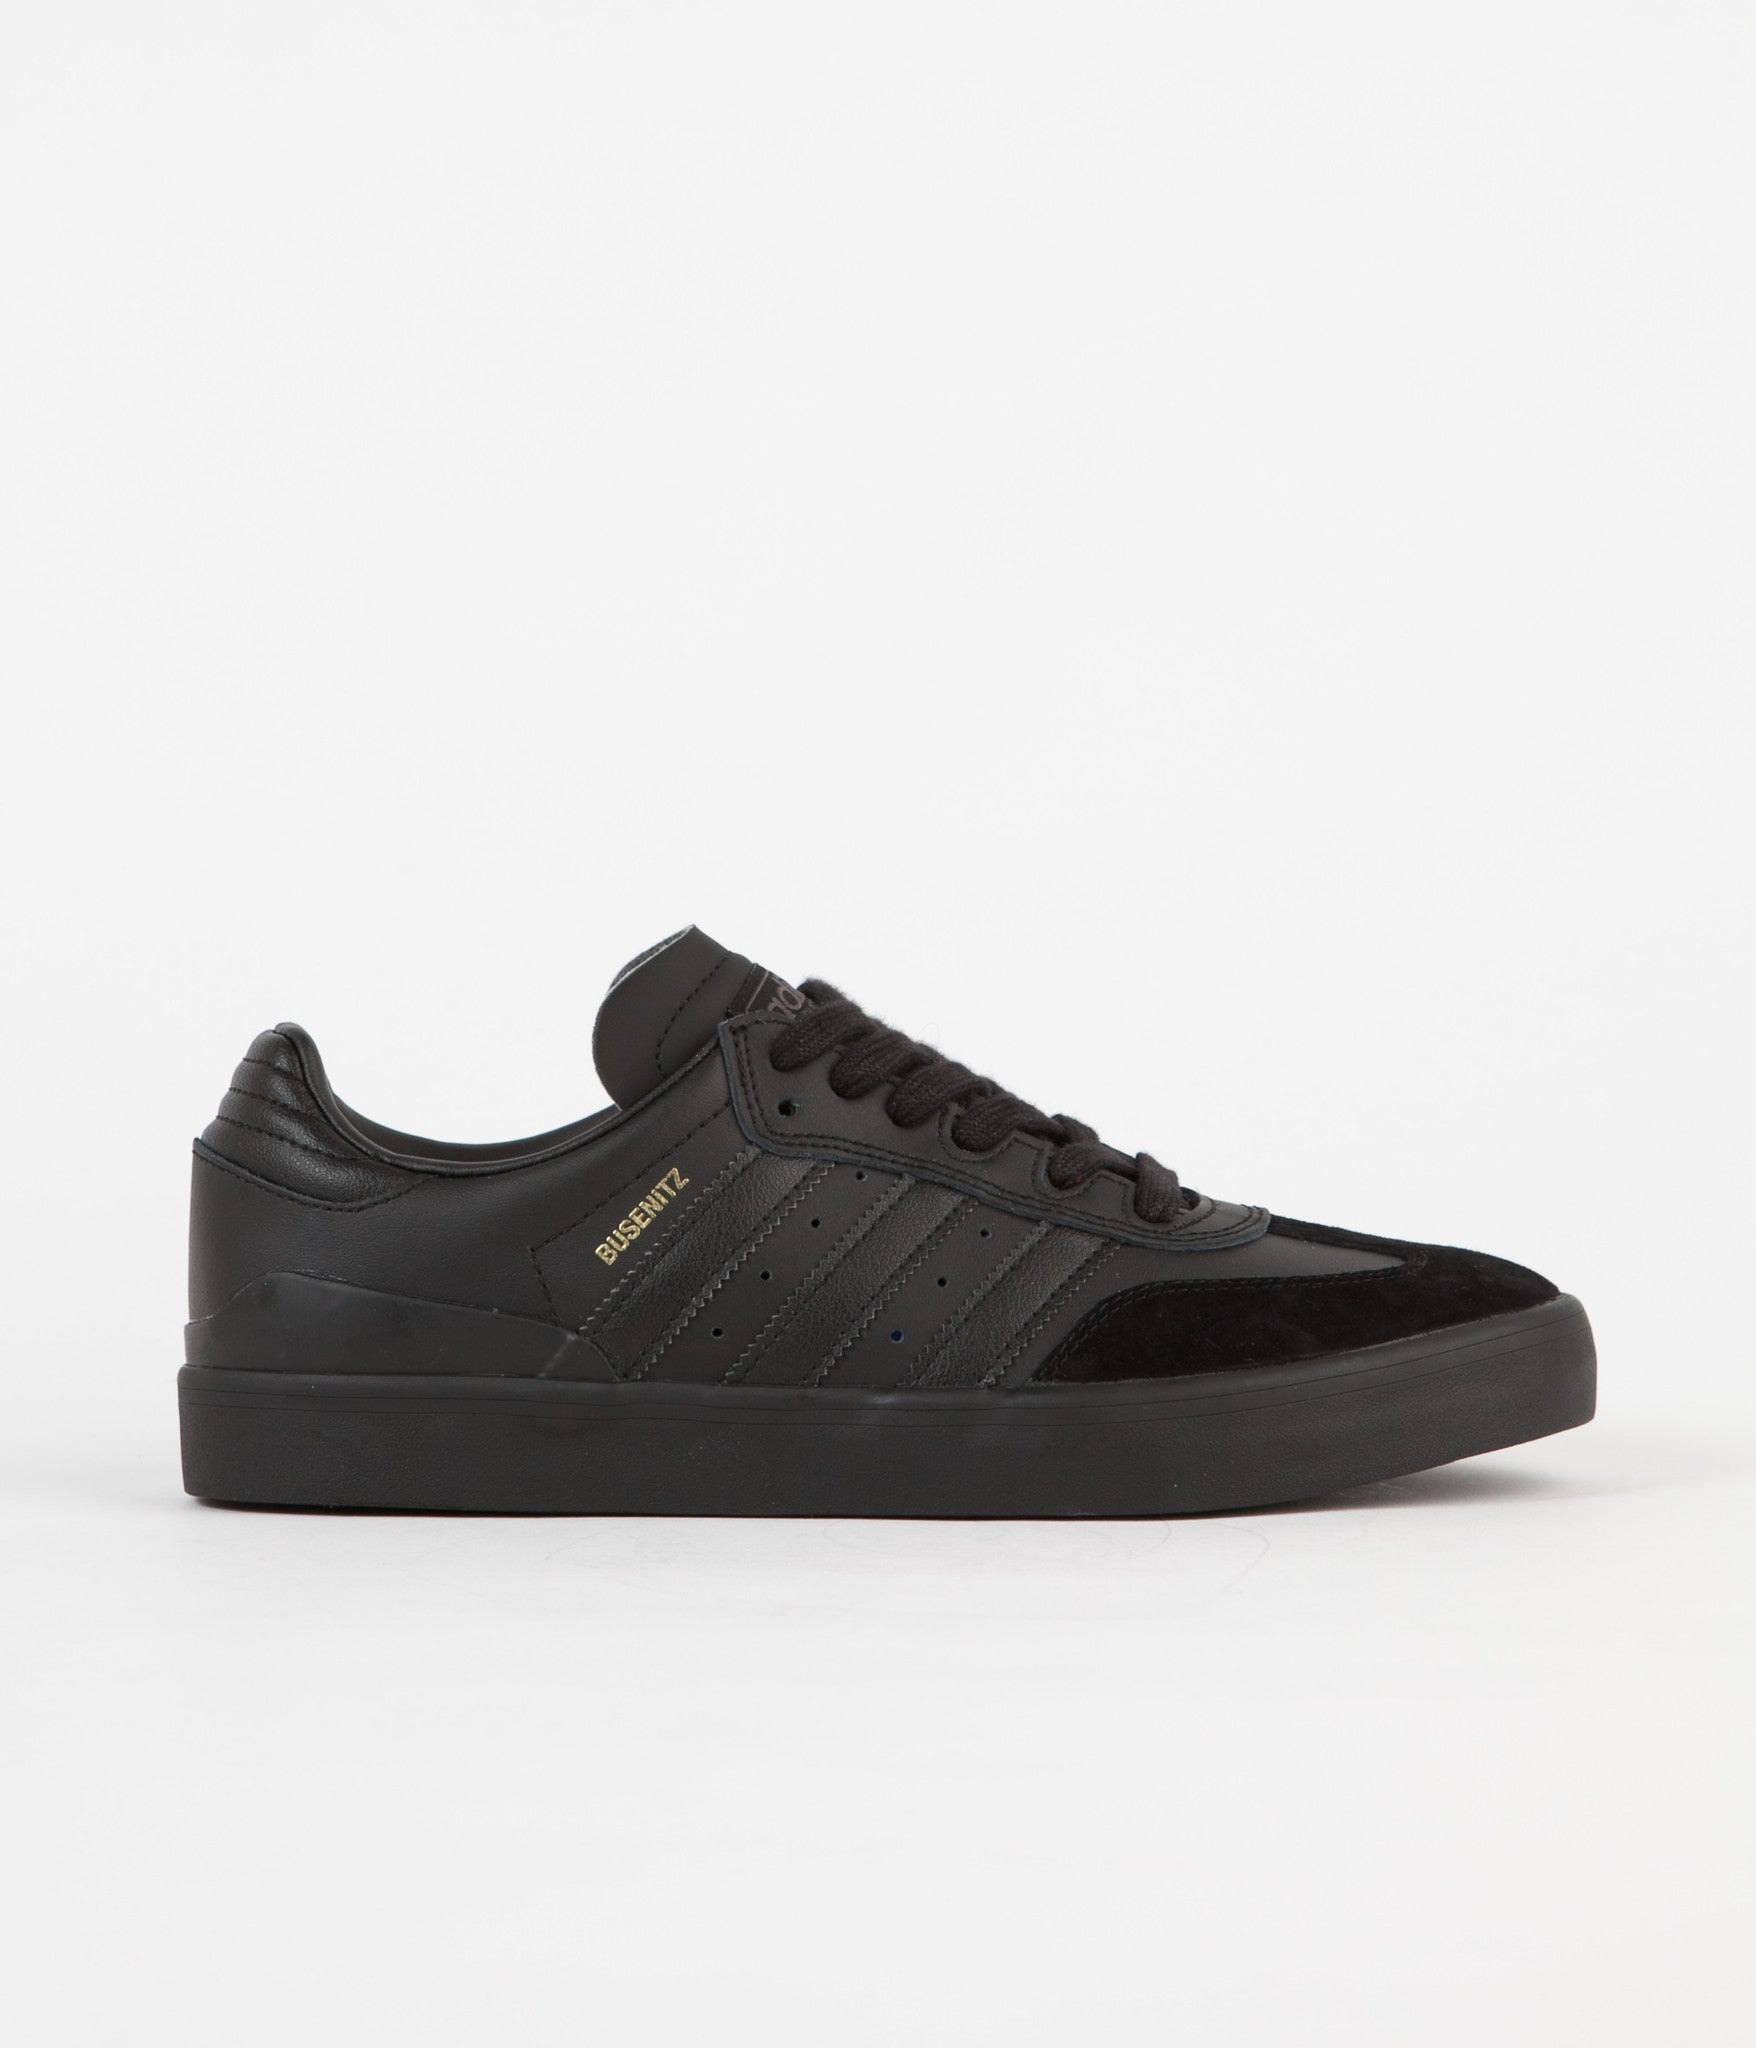 Adidas Busenitz Vulc Samba Edition Shoes - Core Black / Core Black / Solid Grey